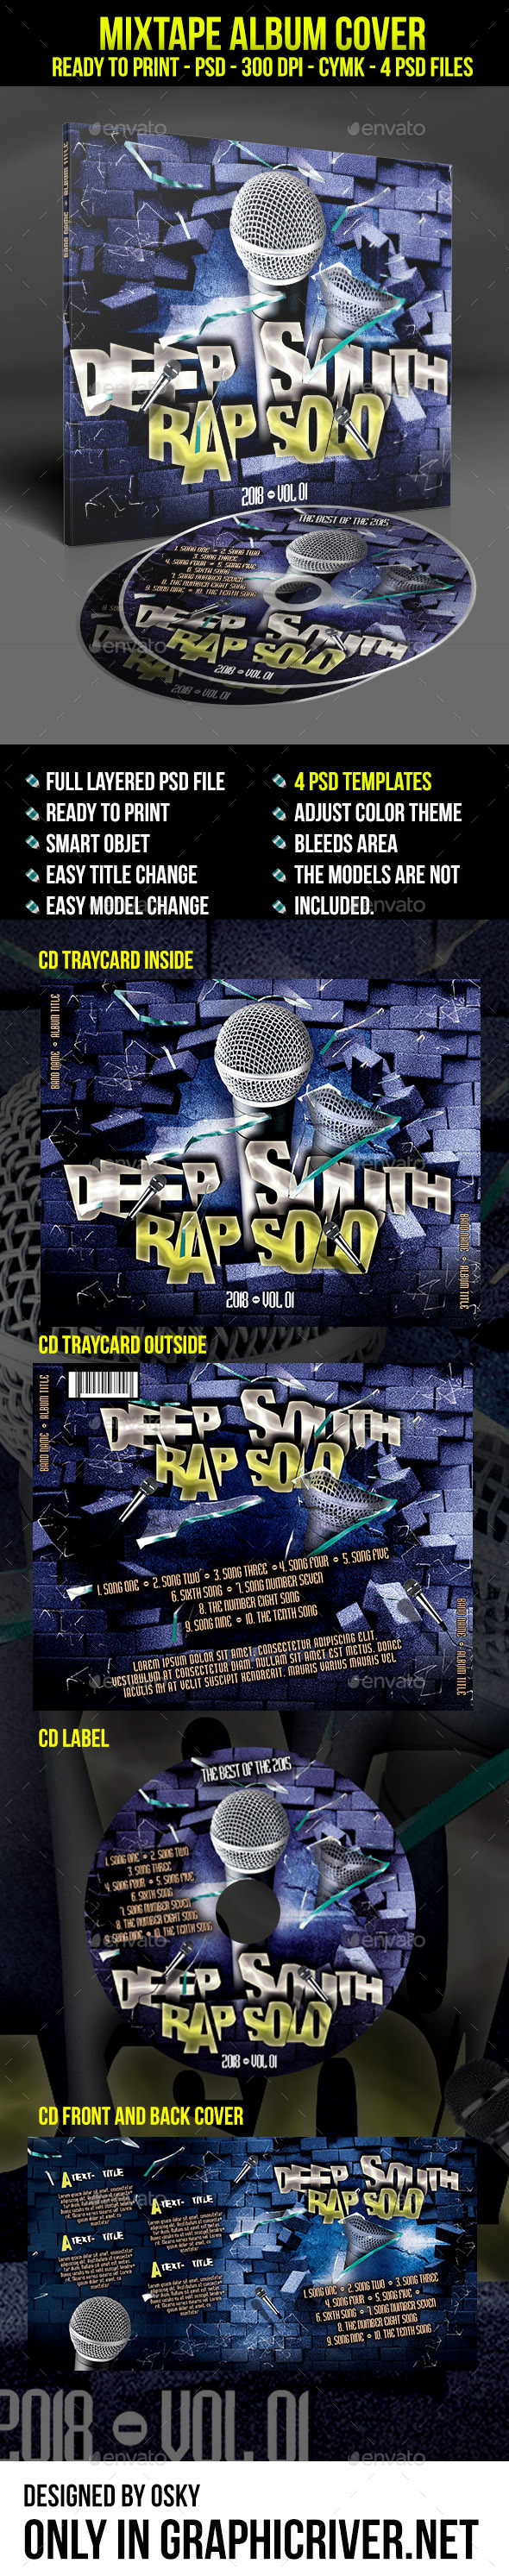 GraphicRiver Deep South Rap Solo Mixtape Cover 9265284